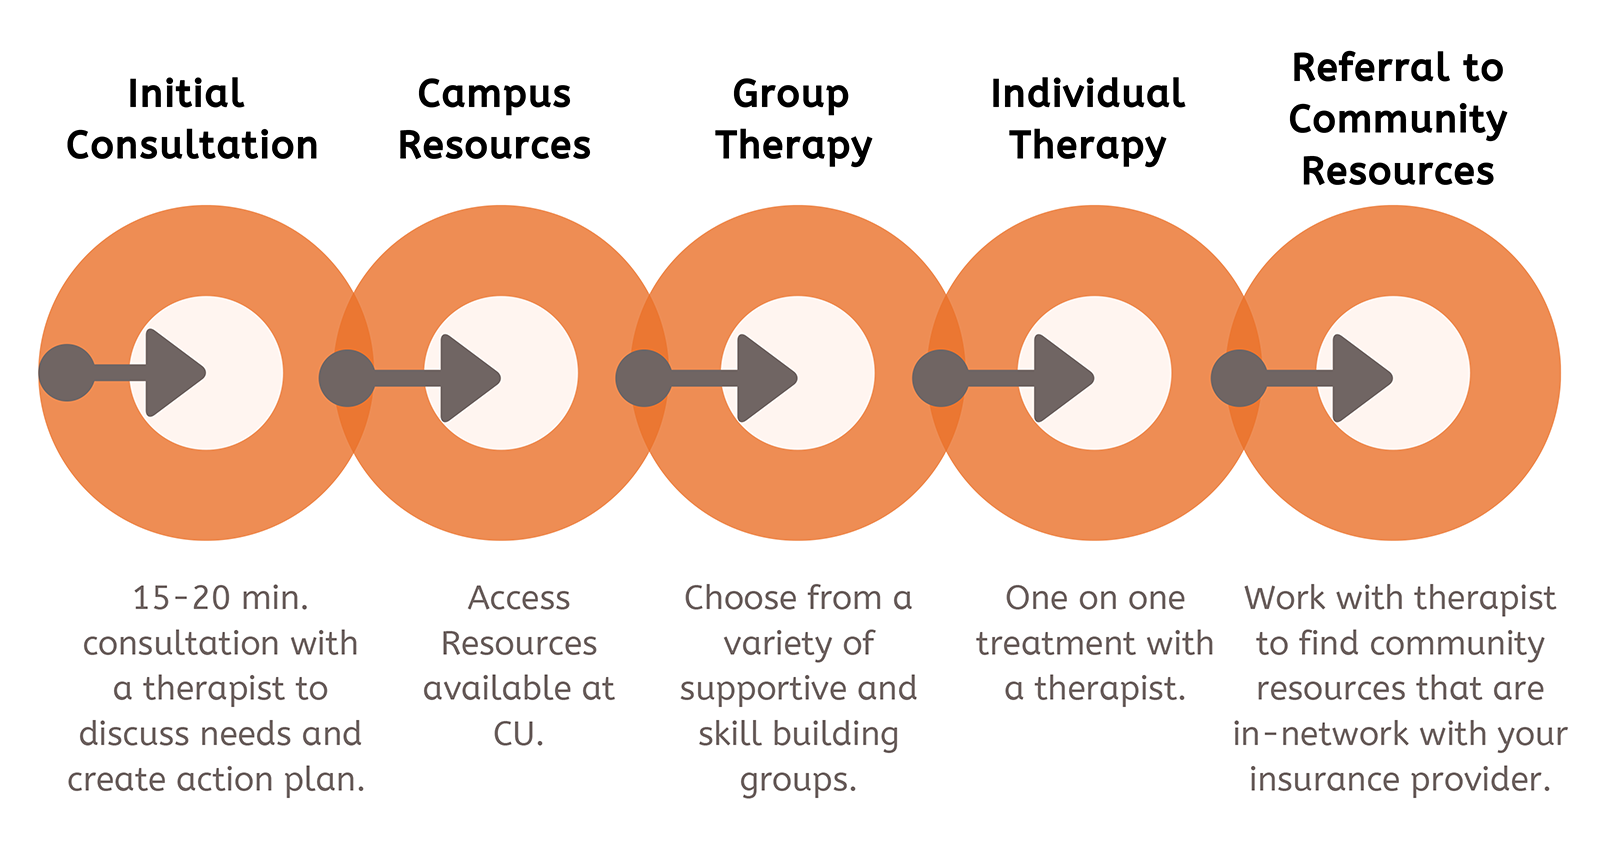 image of the Stepped Care Model of Care